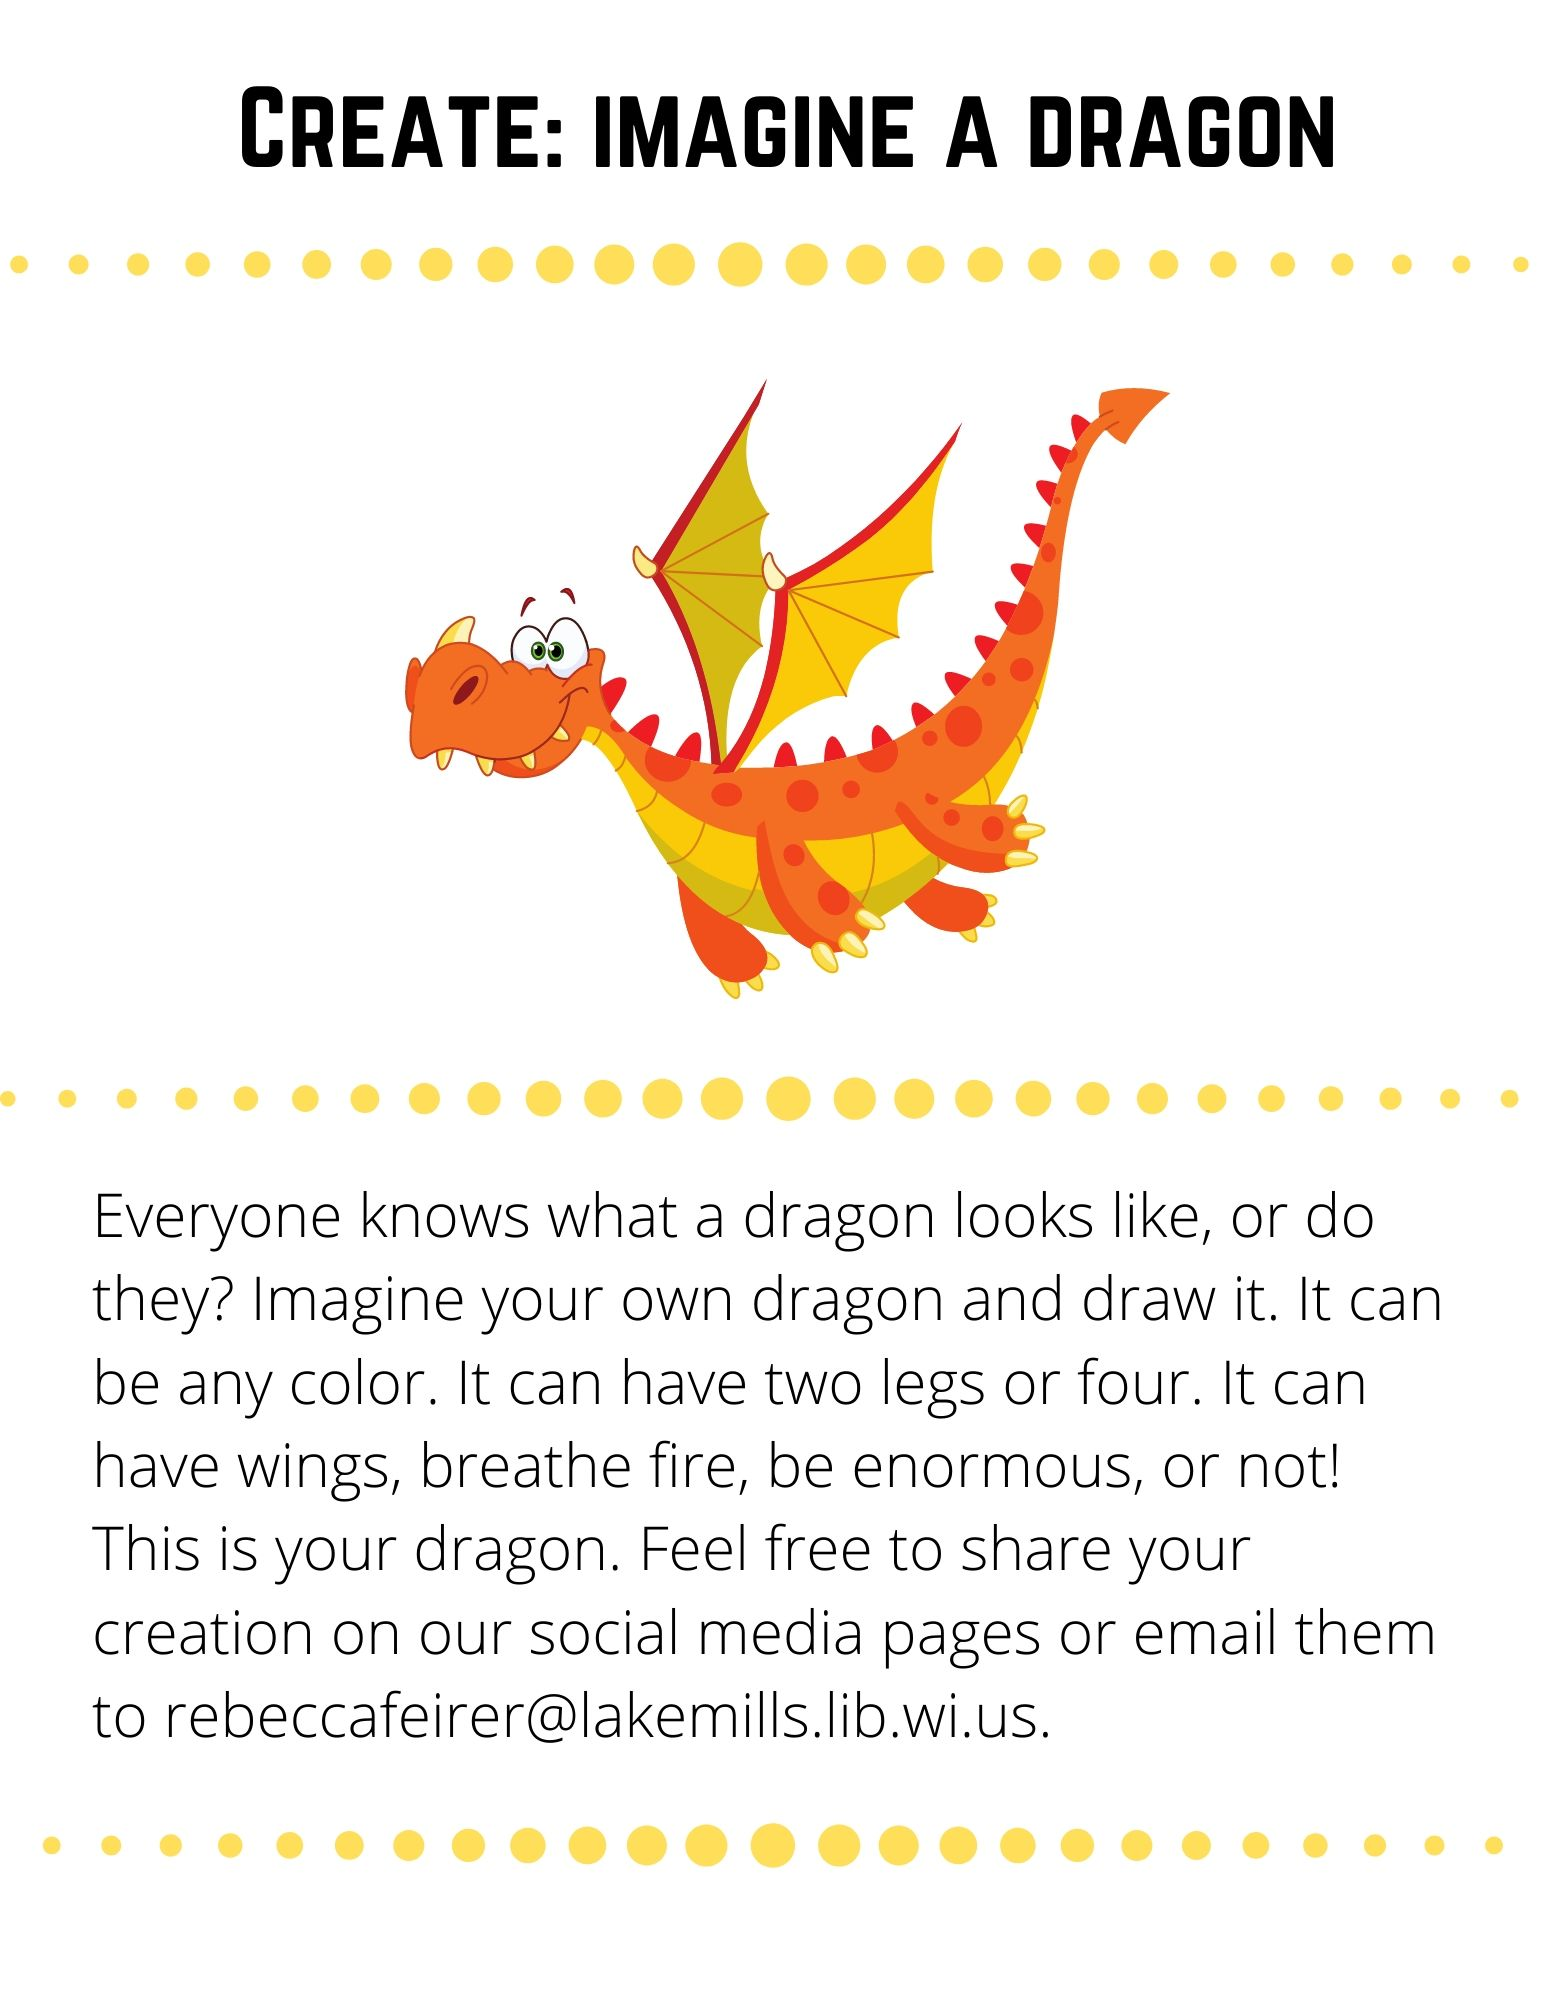 Create: Imagine a Dragon: Everyone knows what a dragon looks like, or do they? Imagine your own dragon and draw it. It can be any color. It can have two legs or four. It can have wings, breathe fire, be enormous, or not! This is your dragon. Feel free to share your creation on our social media pages or email them to rebeccafeirer@lakemills.lib.wi.us.